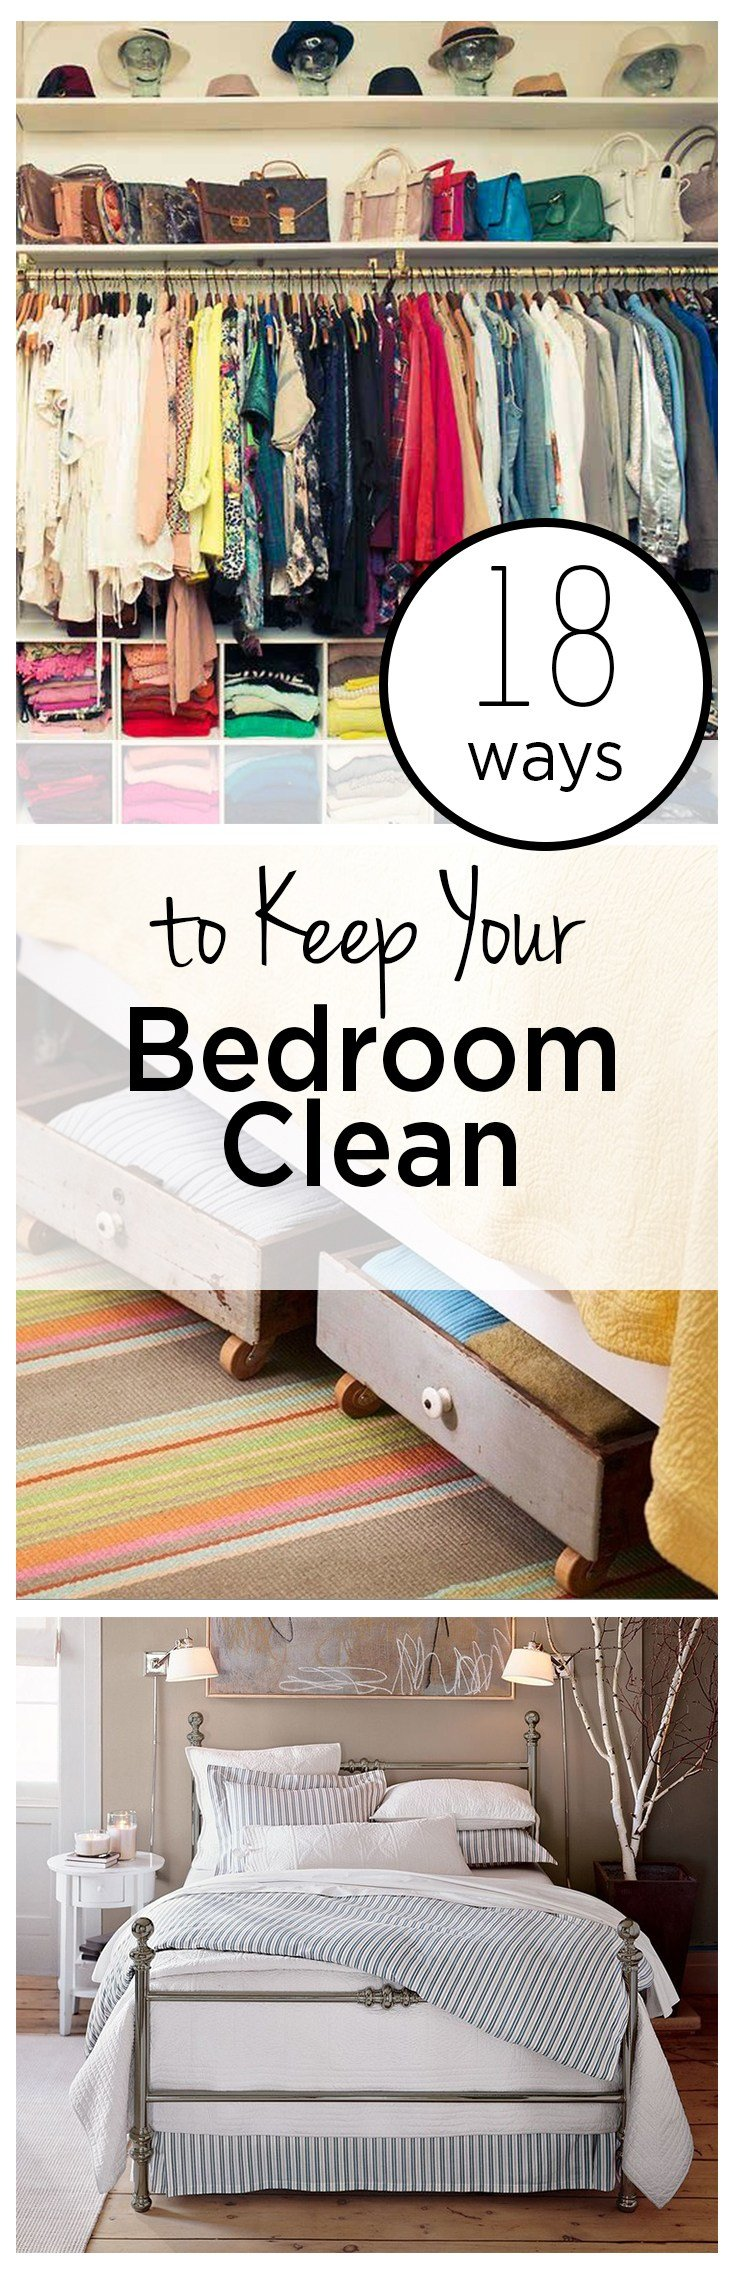 Best 18 Ways To Keep Your Bedroom Clean Wrapped In Rust With Pictures